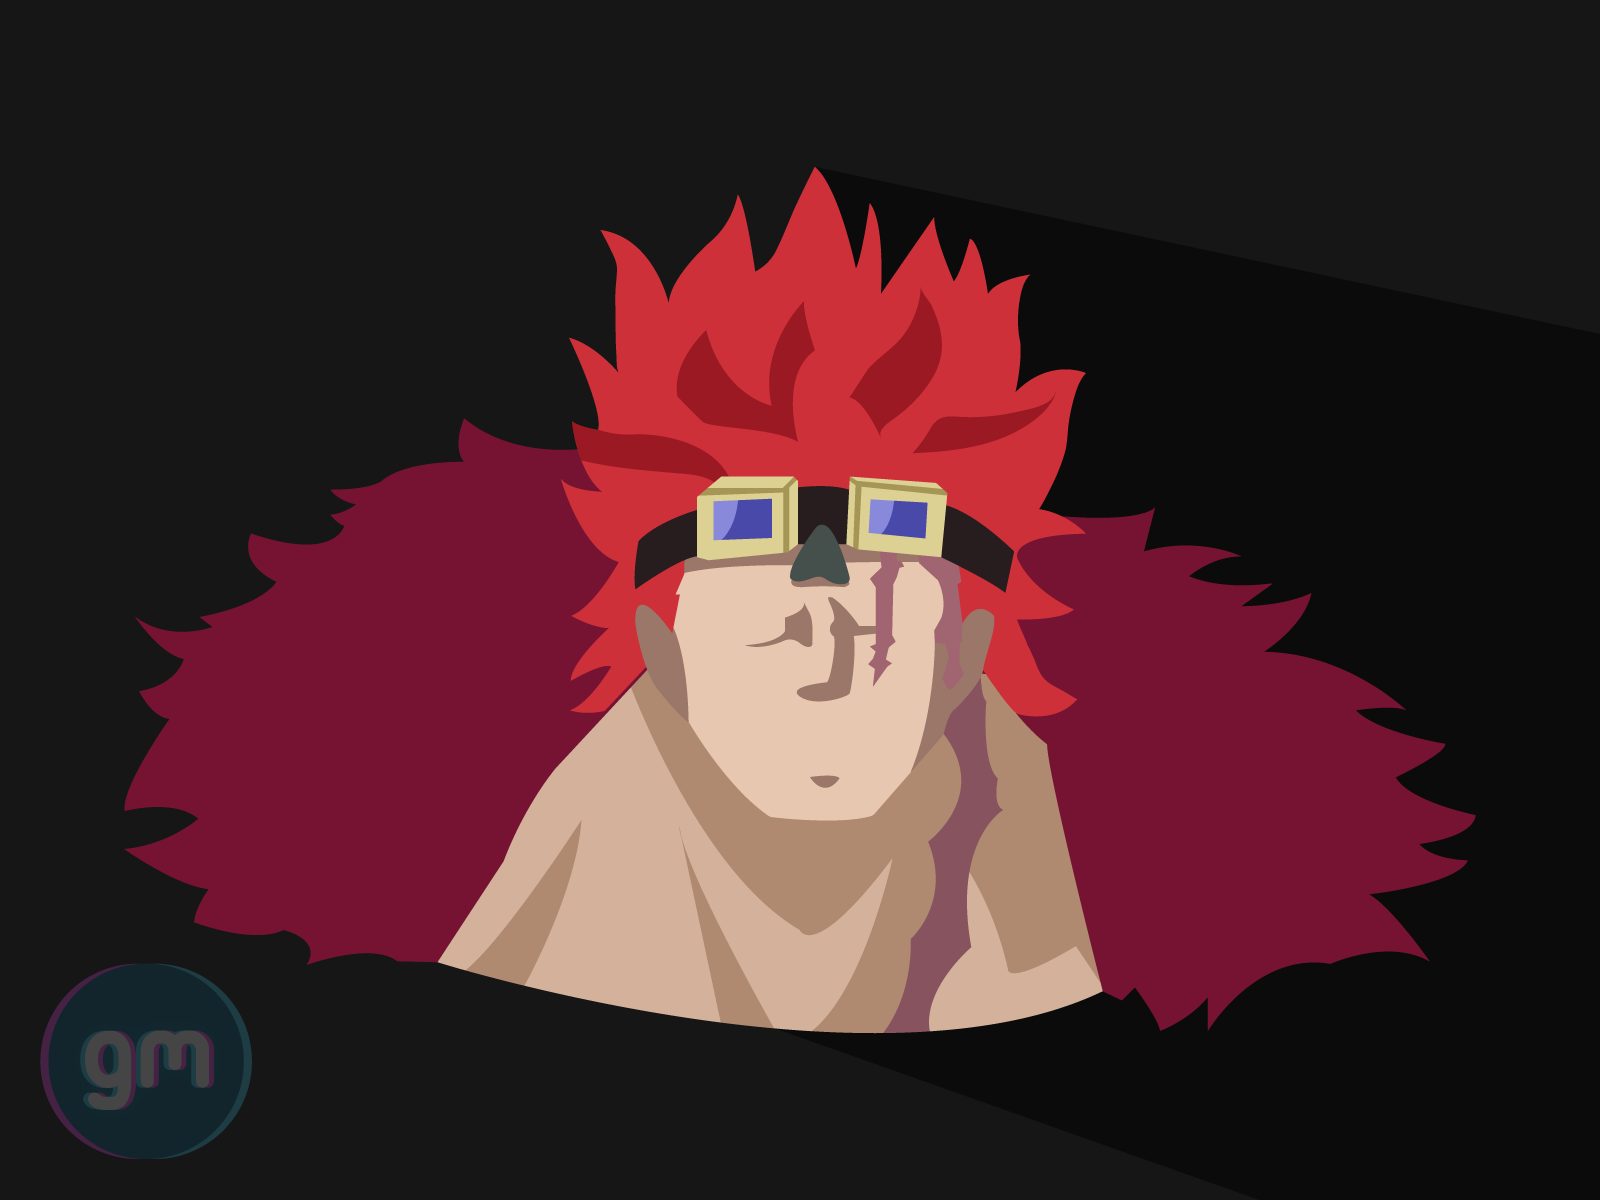 Flat Art Of Captain Kid From One Piece By Giannis M On Dribbble